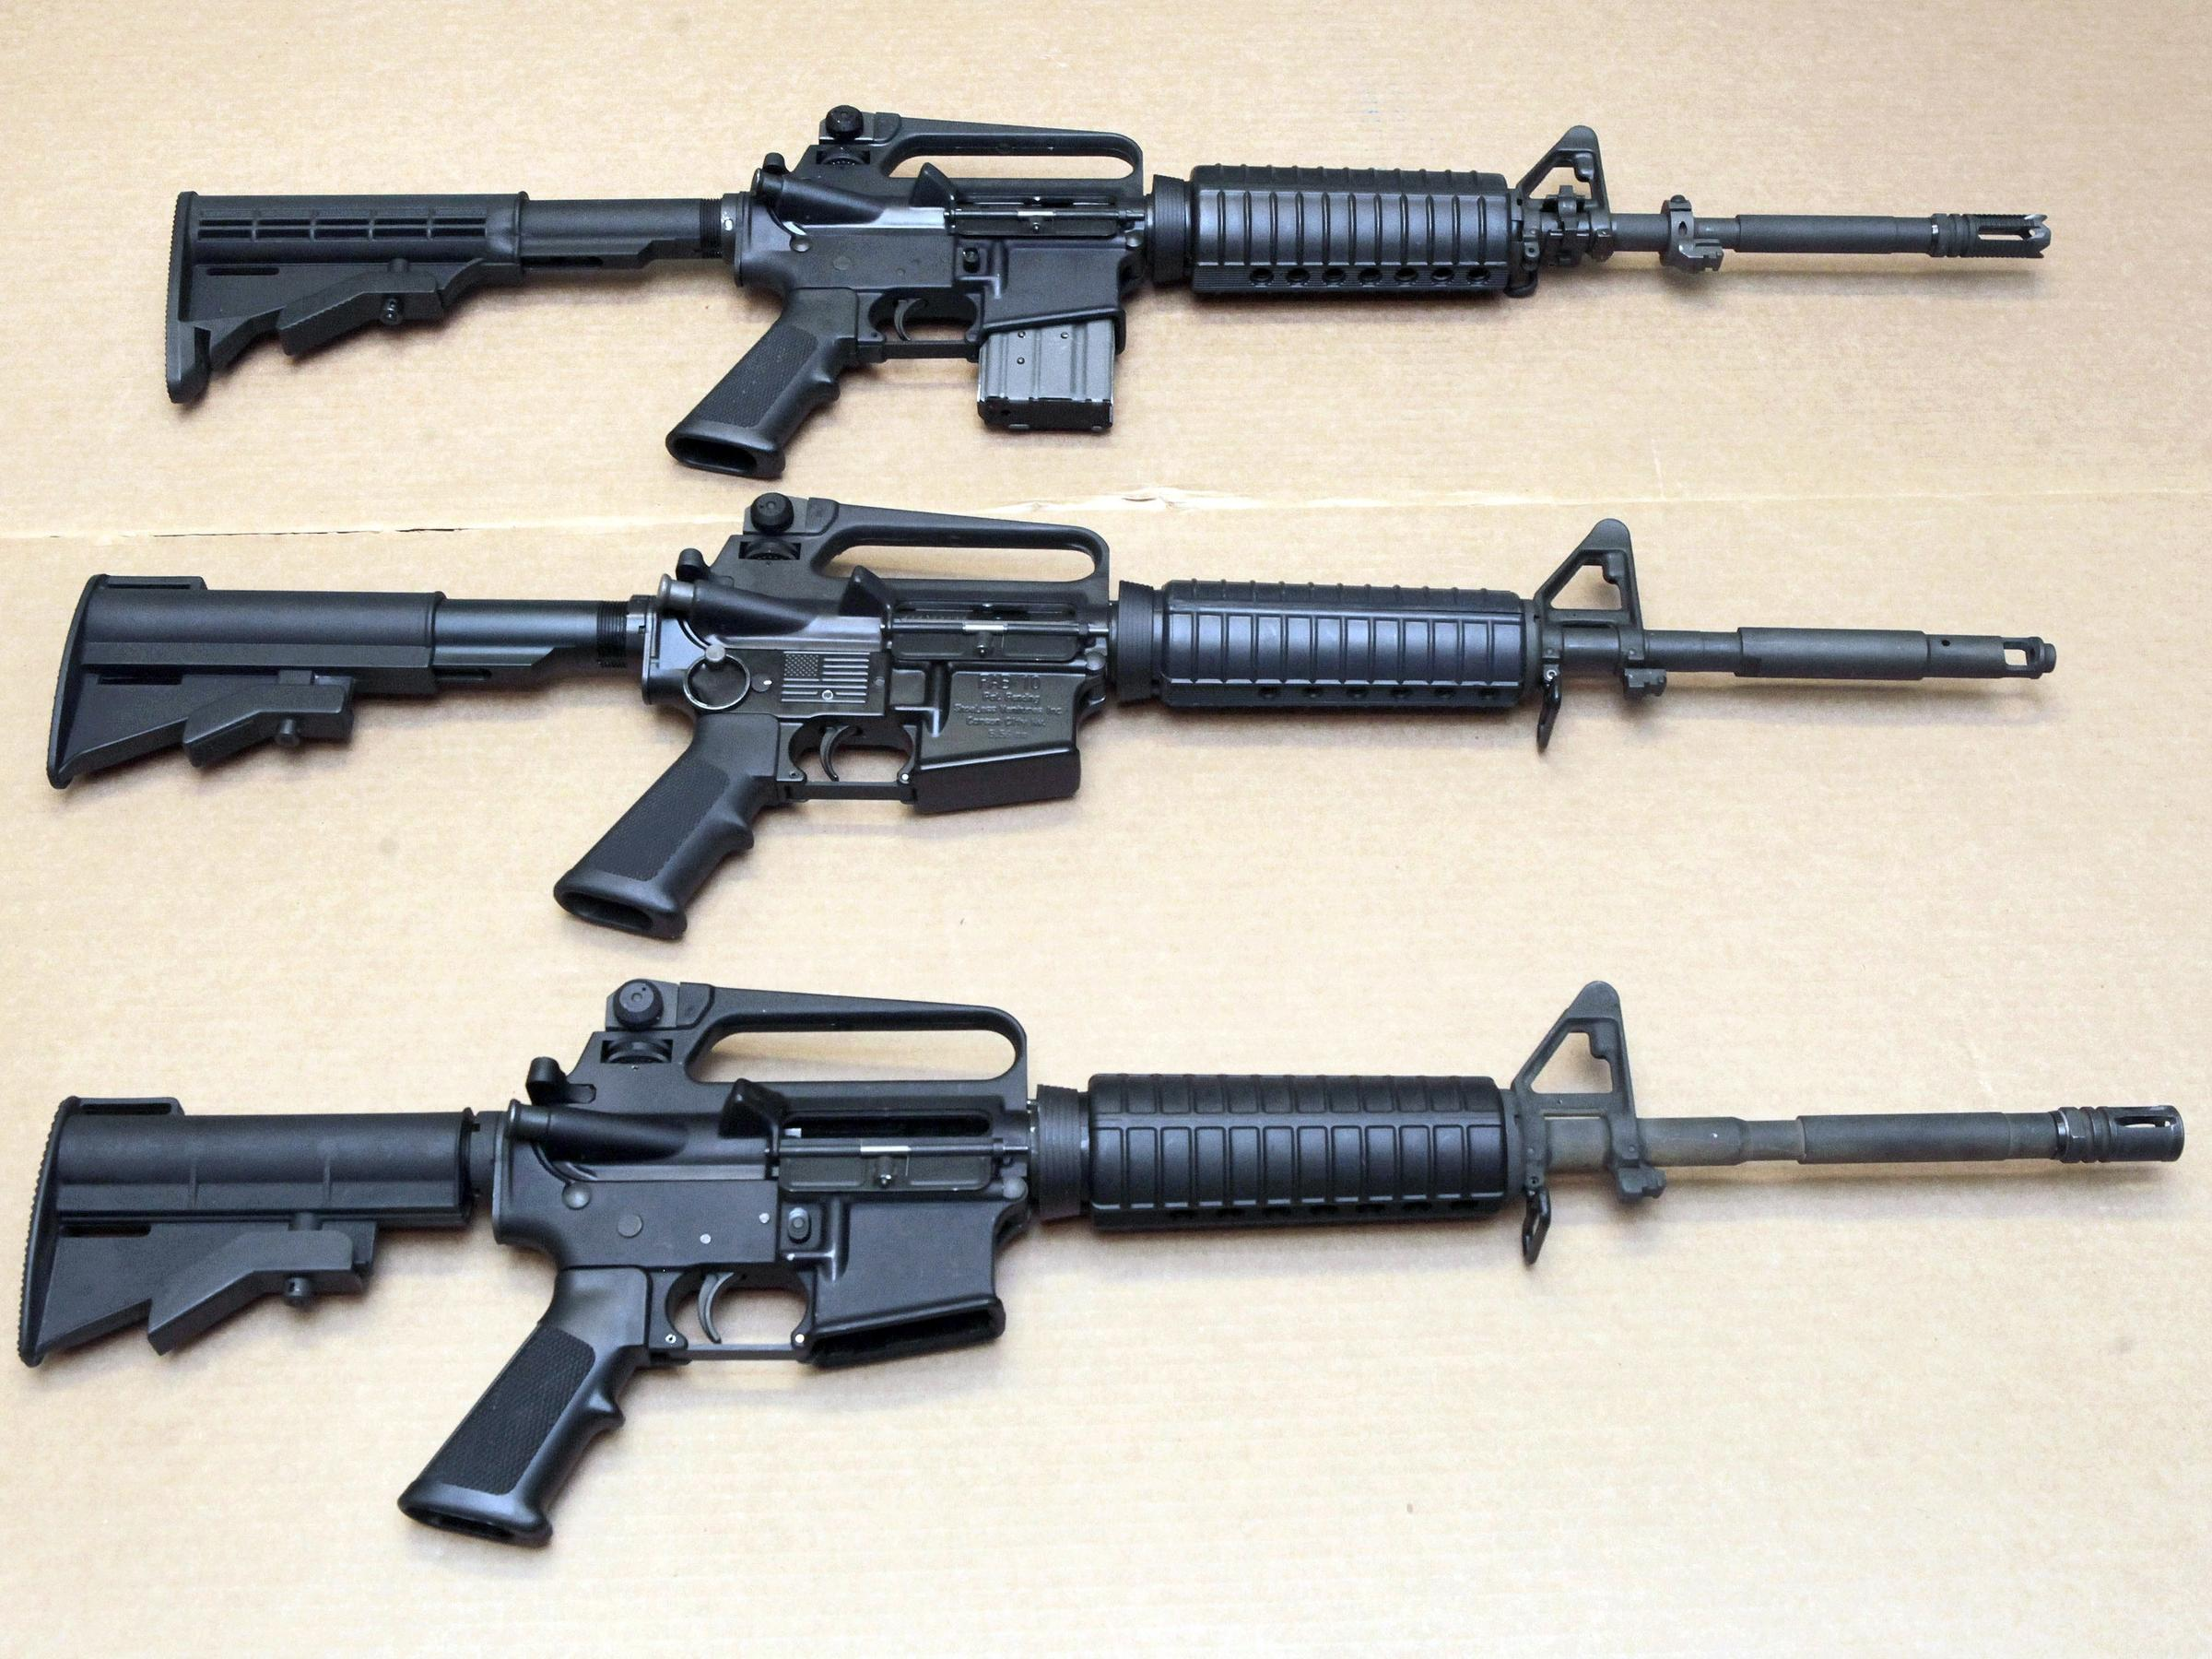 Colt Suspends Manufacture Of Controversial Ar 15 For